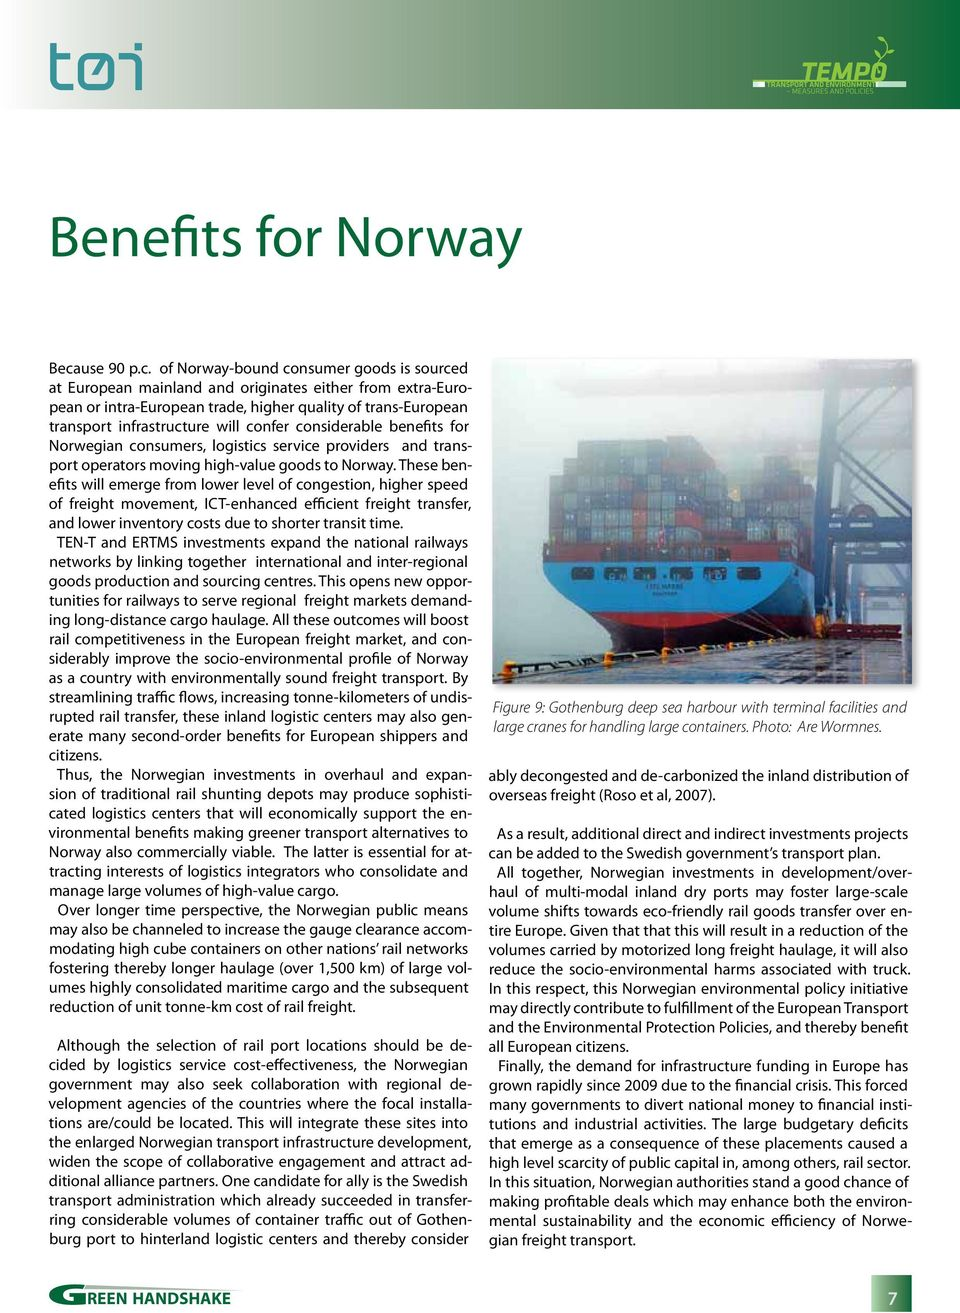 of Norway-bound consumer goods is sourced at European mainland and originates either from extra-european or intra-european trade, higher quality of trans-european transport infrastructure will confer